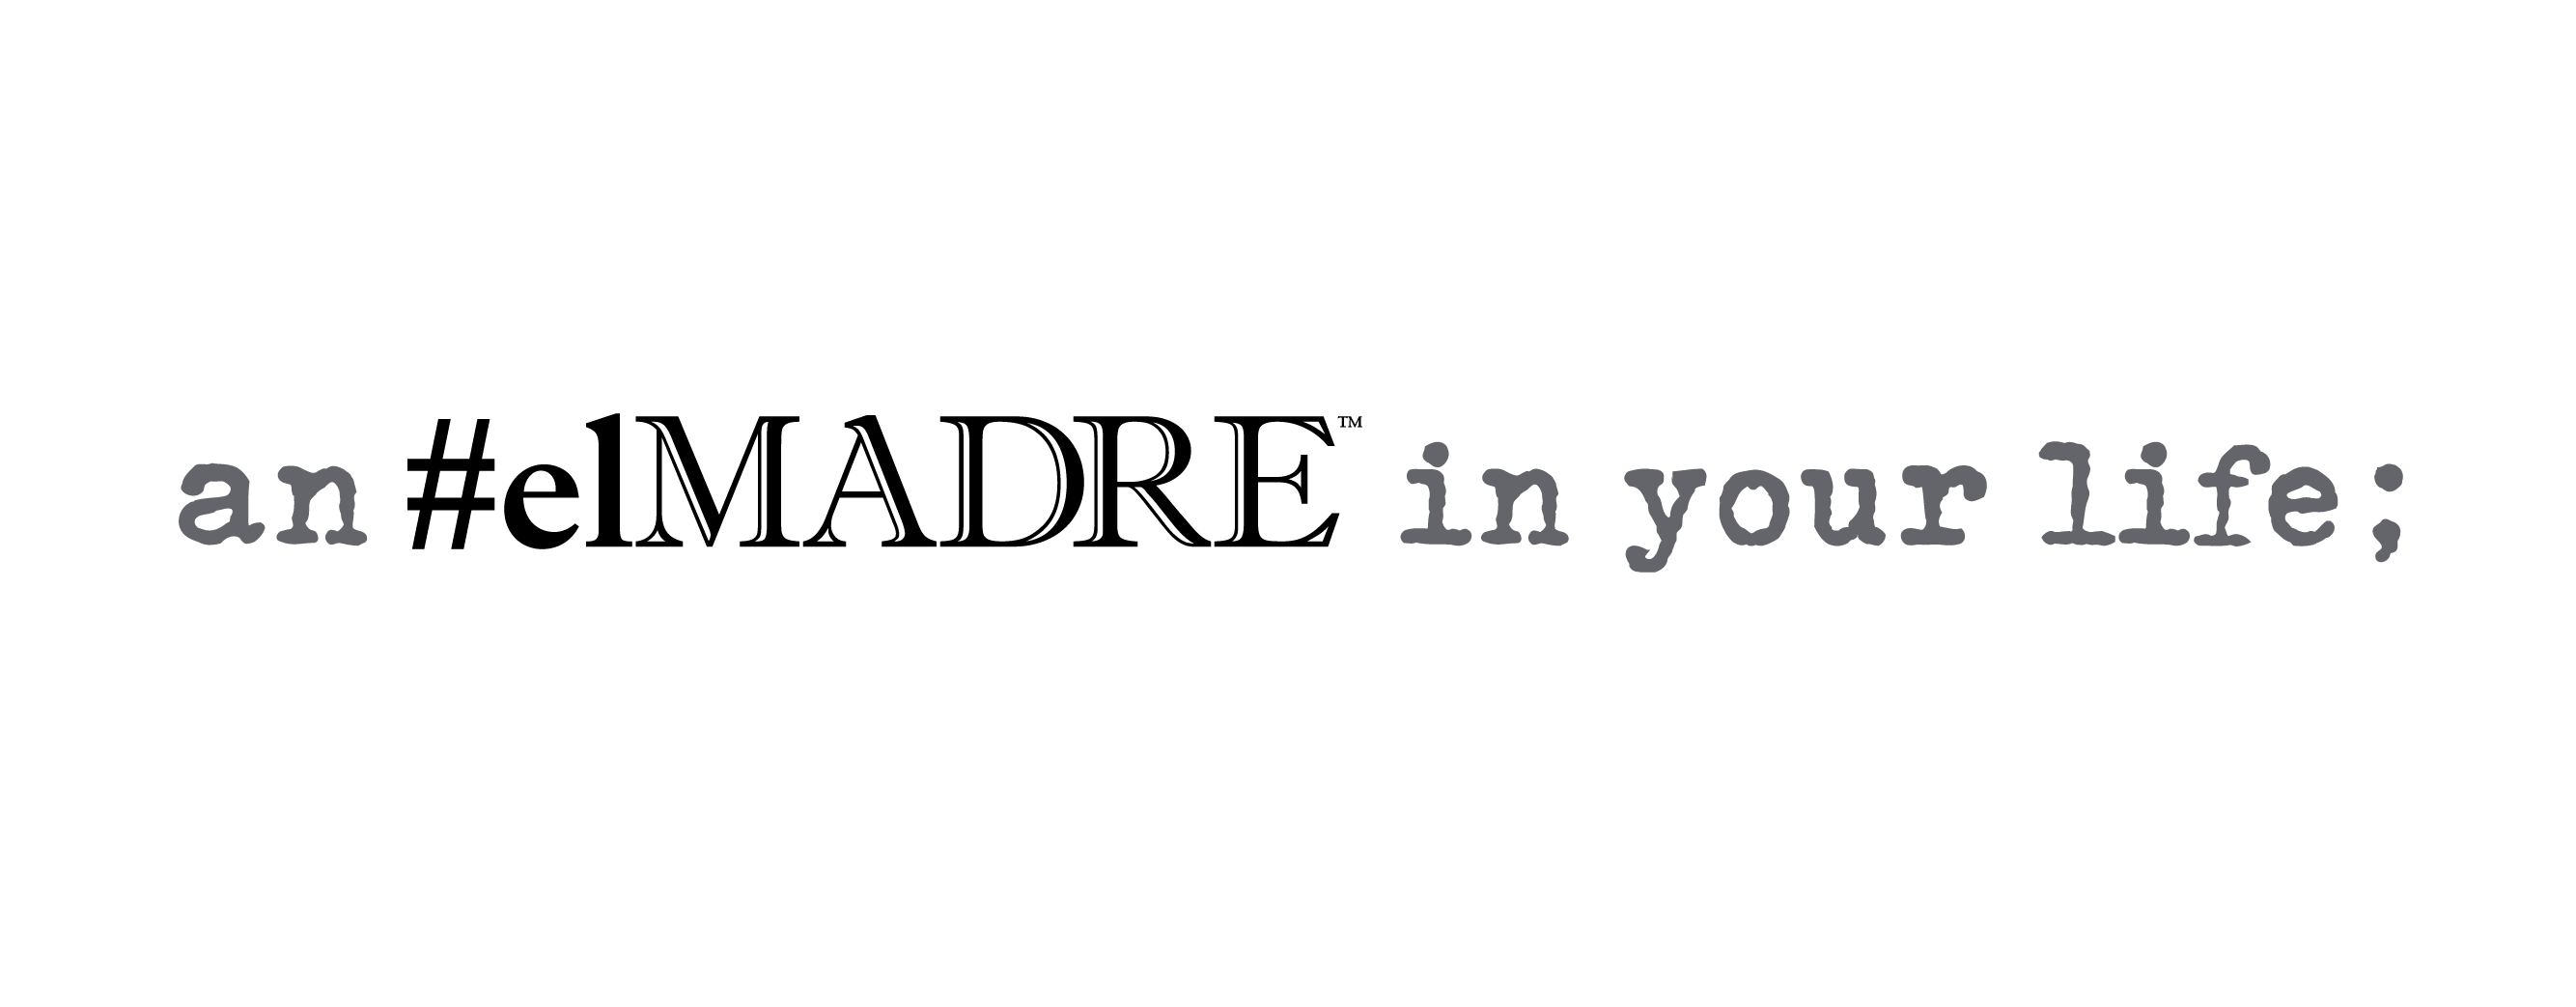 You are_ slides-04